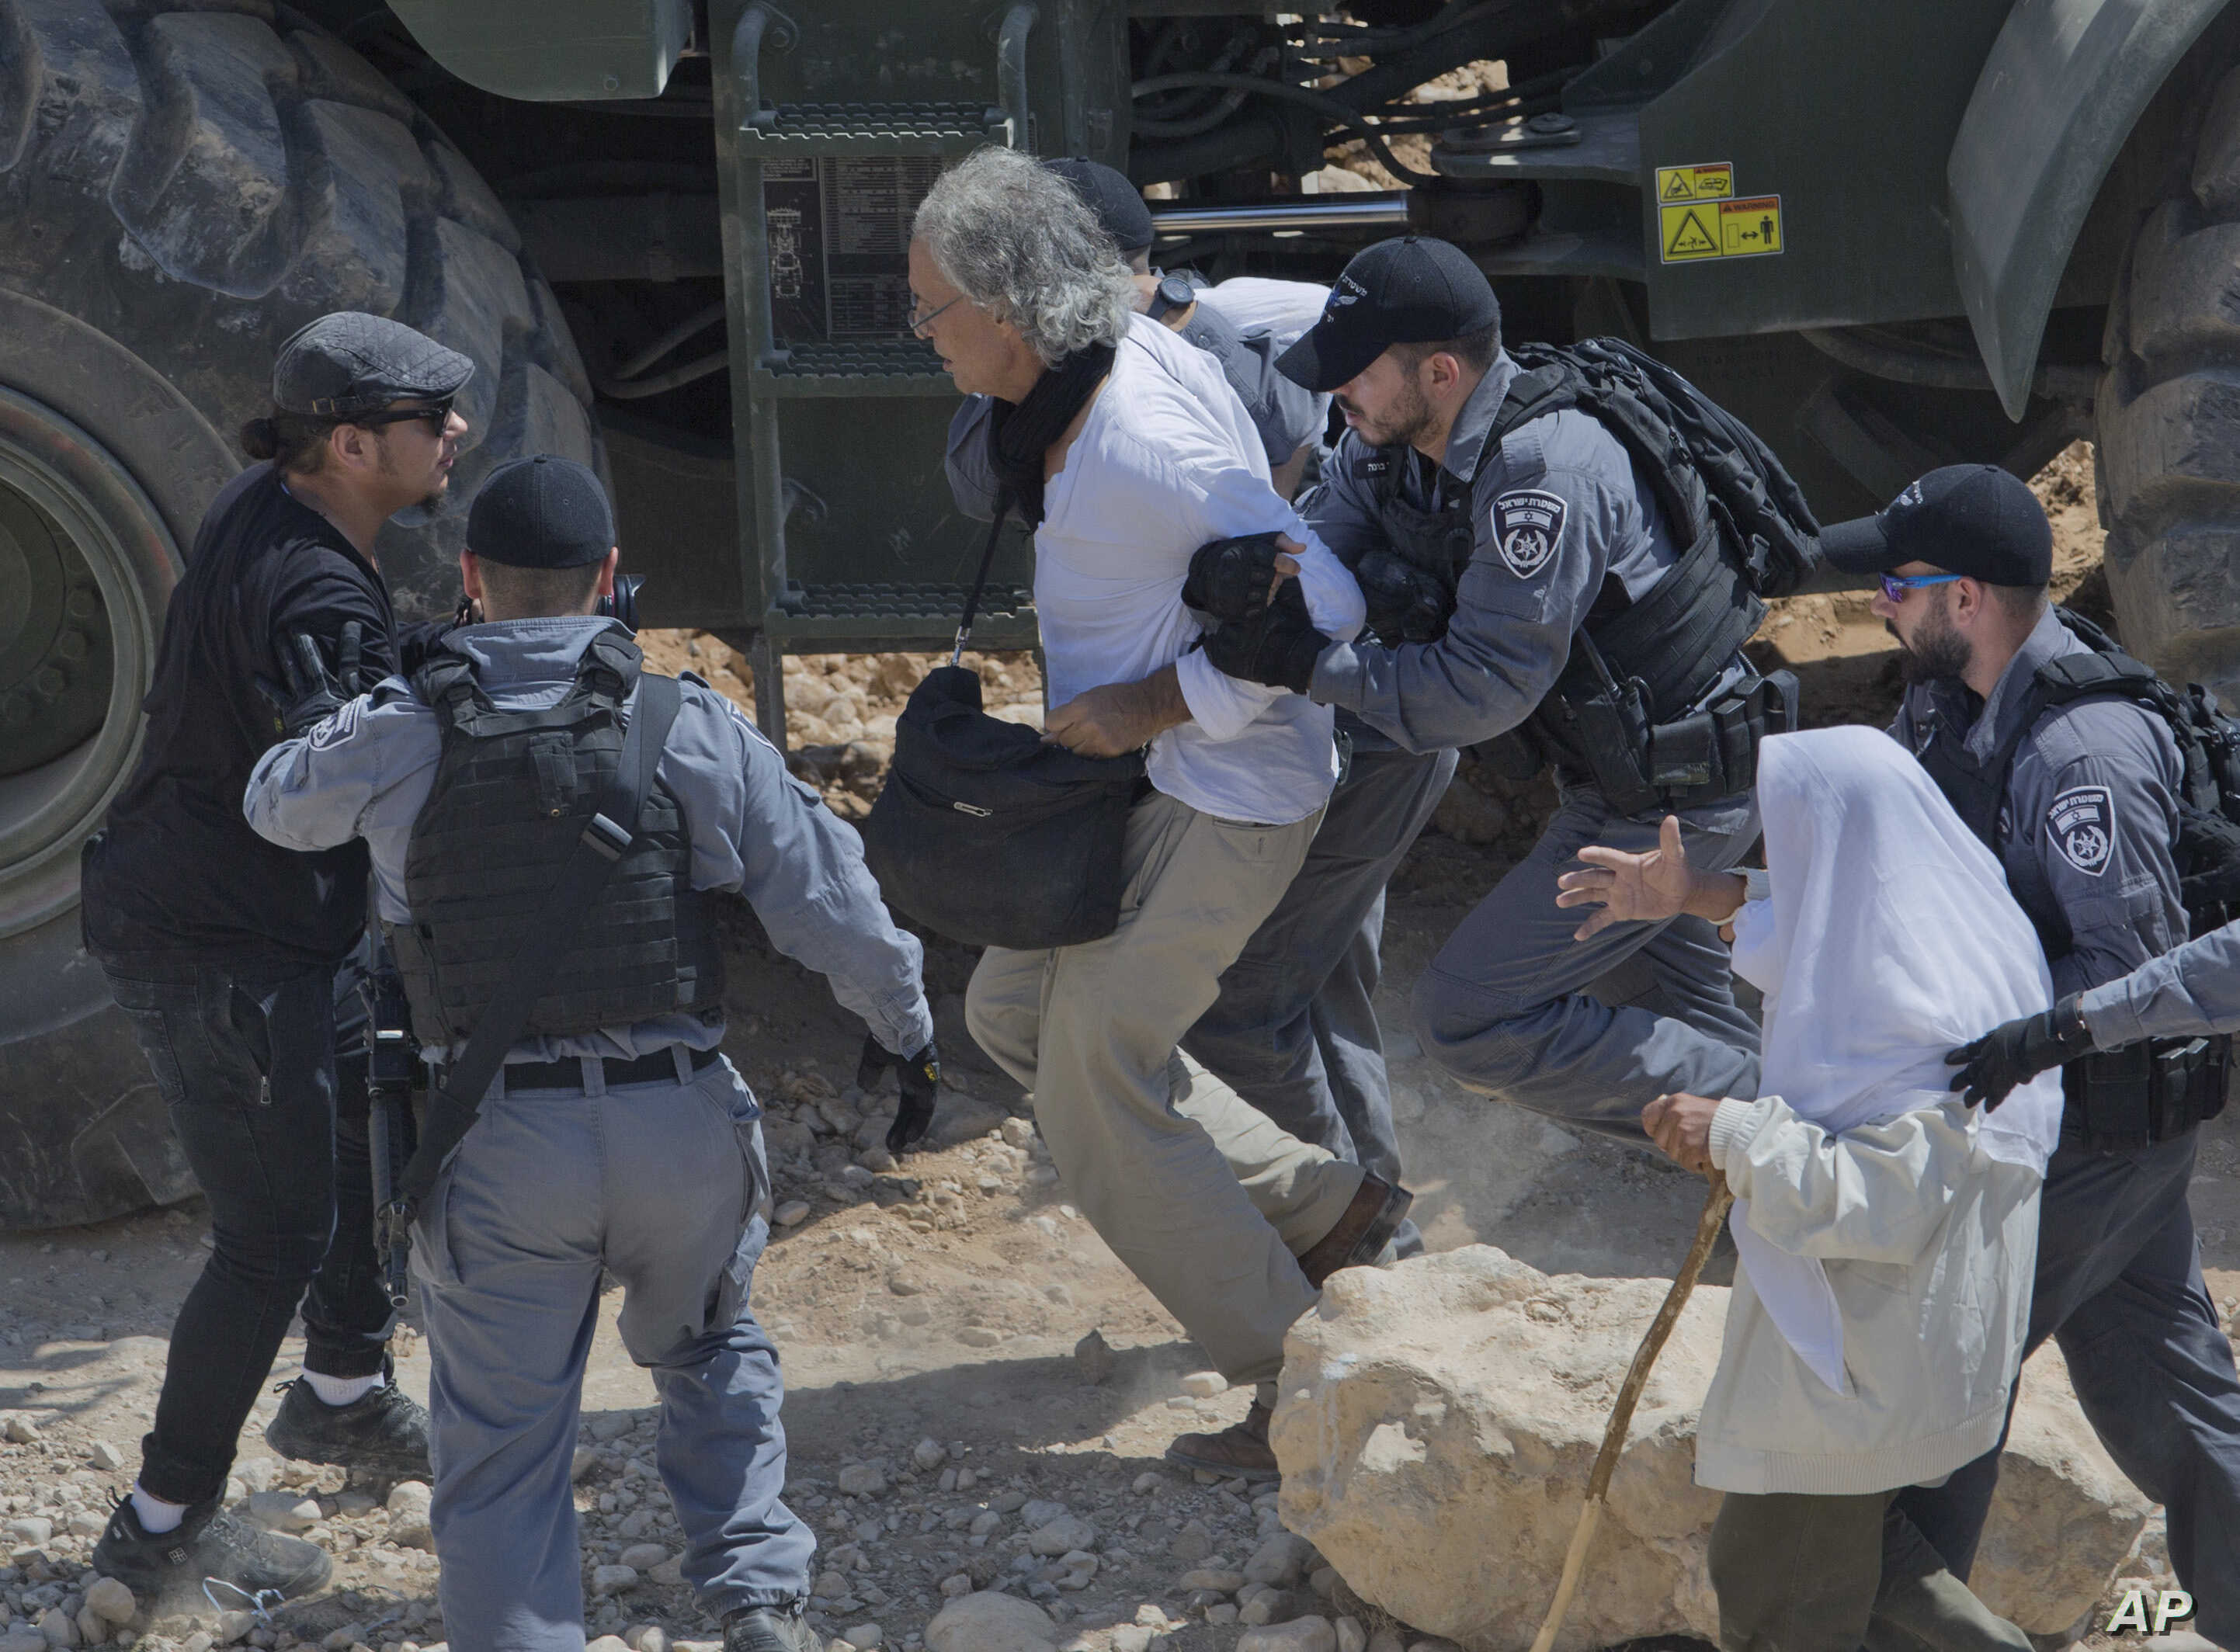 Israeli border police arrest American university professor Frank Romano in the West Bank Bedouin community of Khan al-Ahmar, Sept. 14, 2018. A lawyer for Romano says he was detained by Israeli police for allegedly trying to disrupt the work of securi...